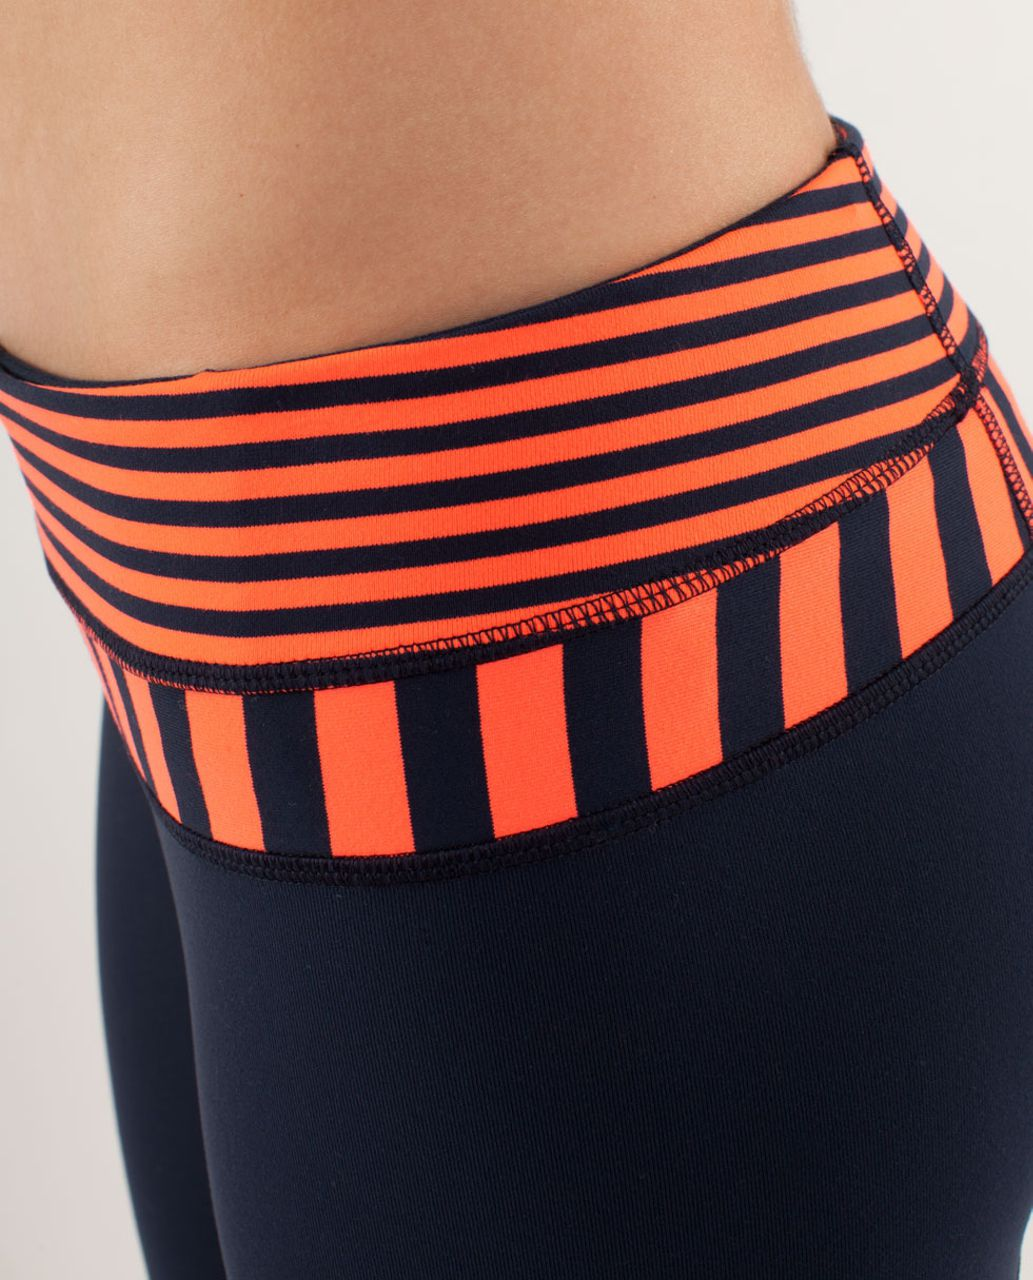 Lululemon Groove Pant *New (Regular) - Inkwell / Classic Stripe Light Flare Inkwell / Sea Stripe Light Flare Inkwell